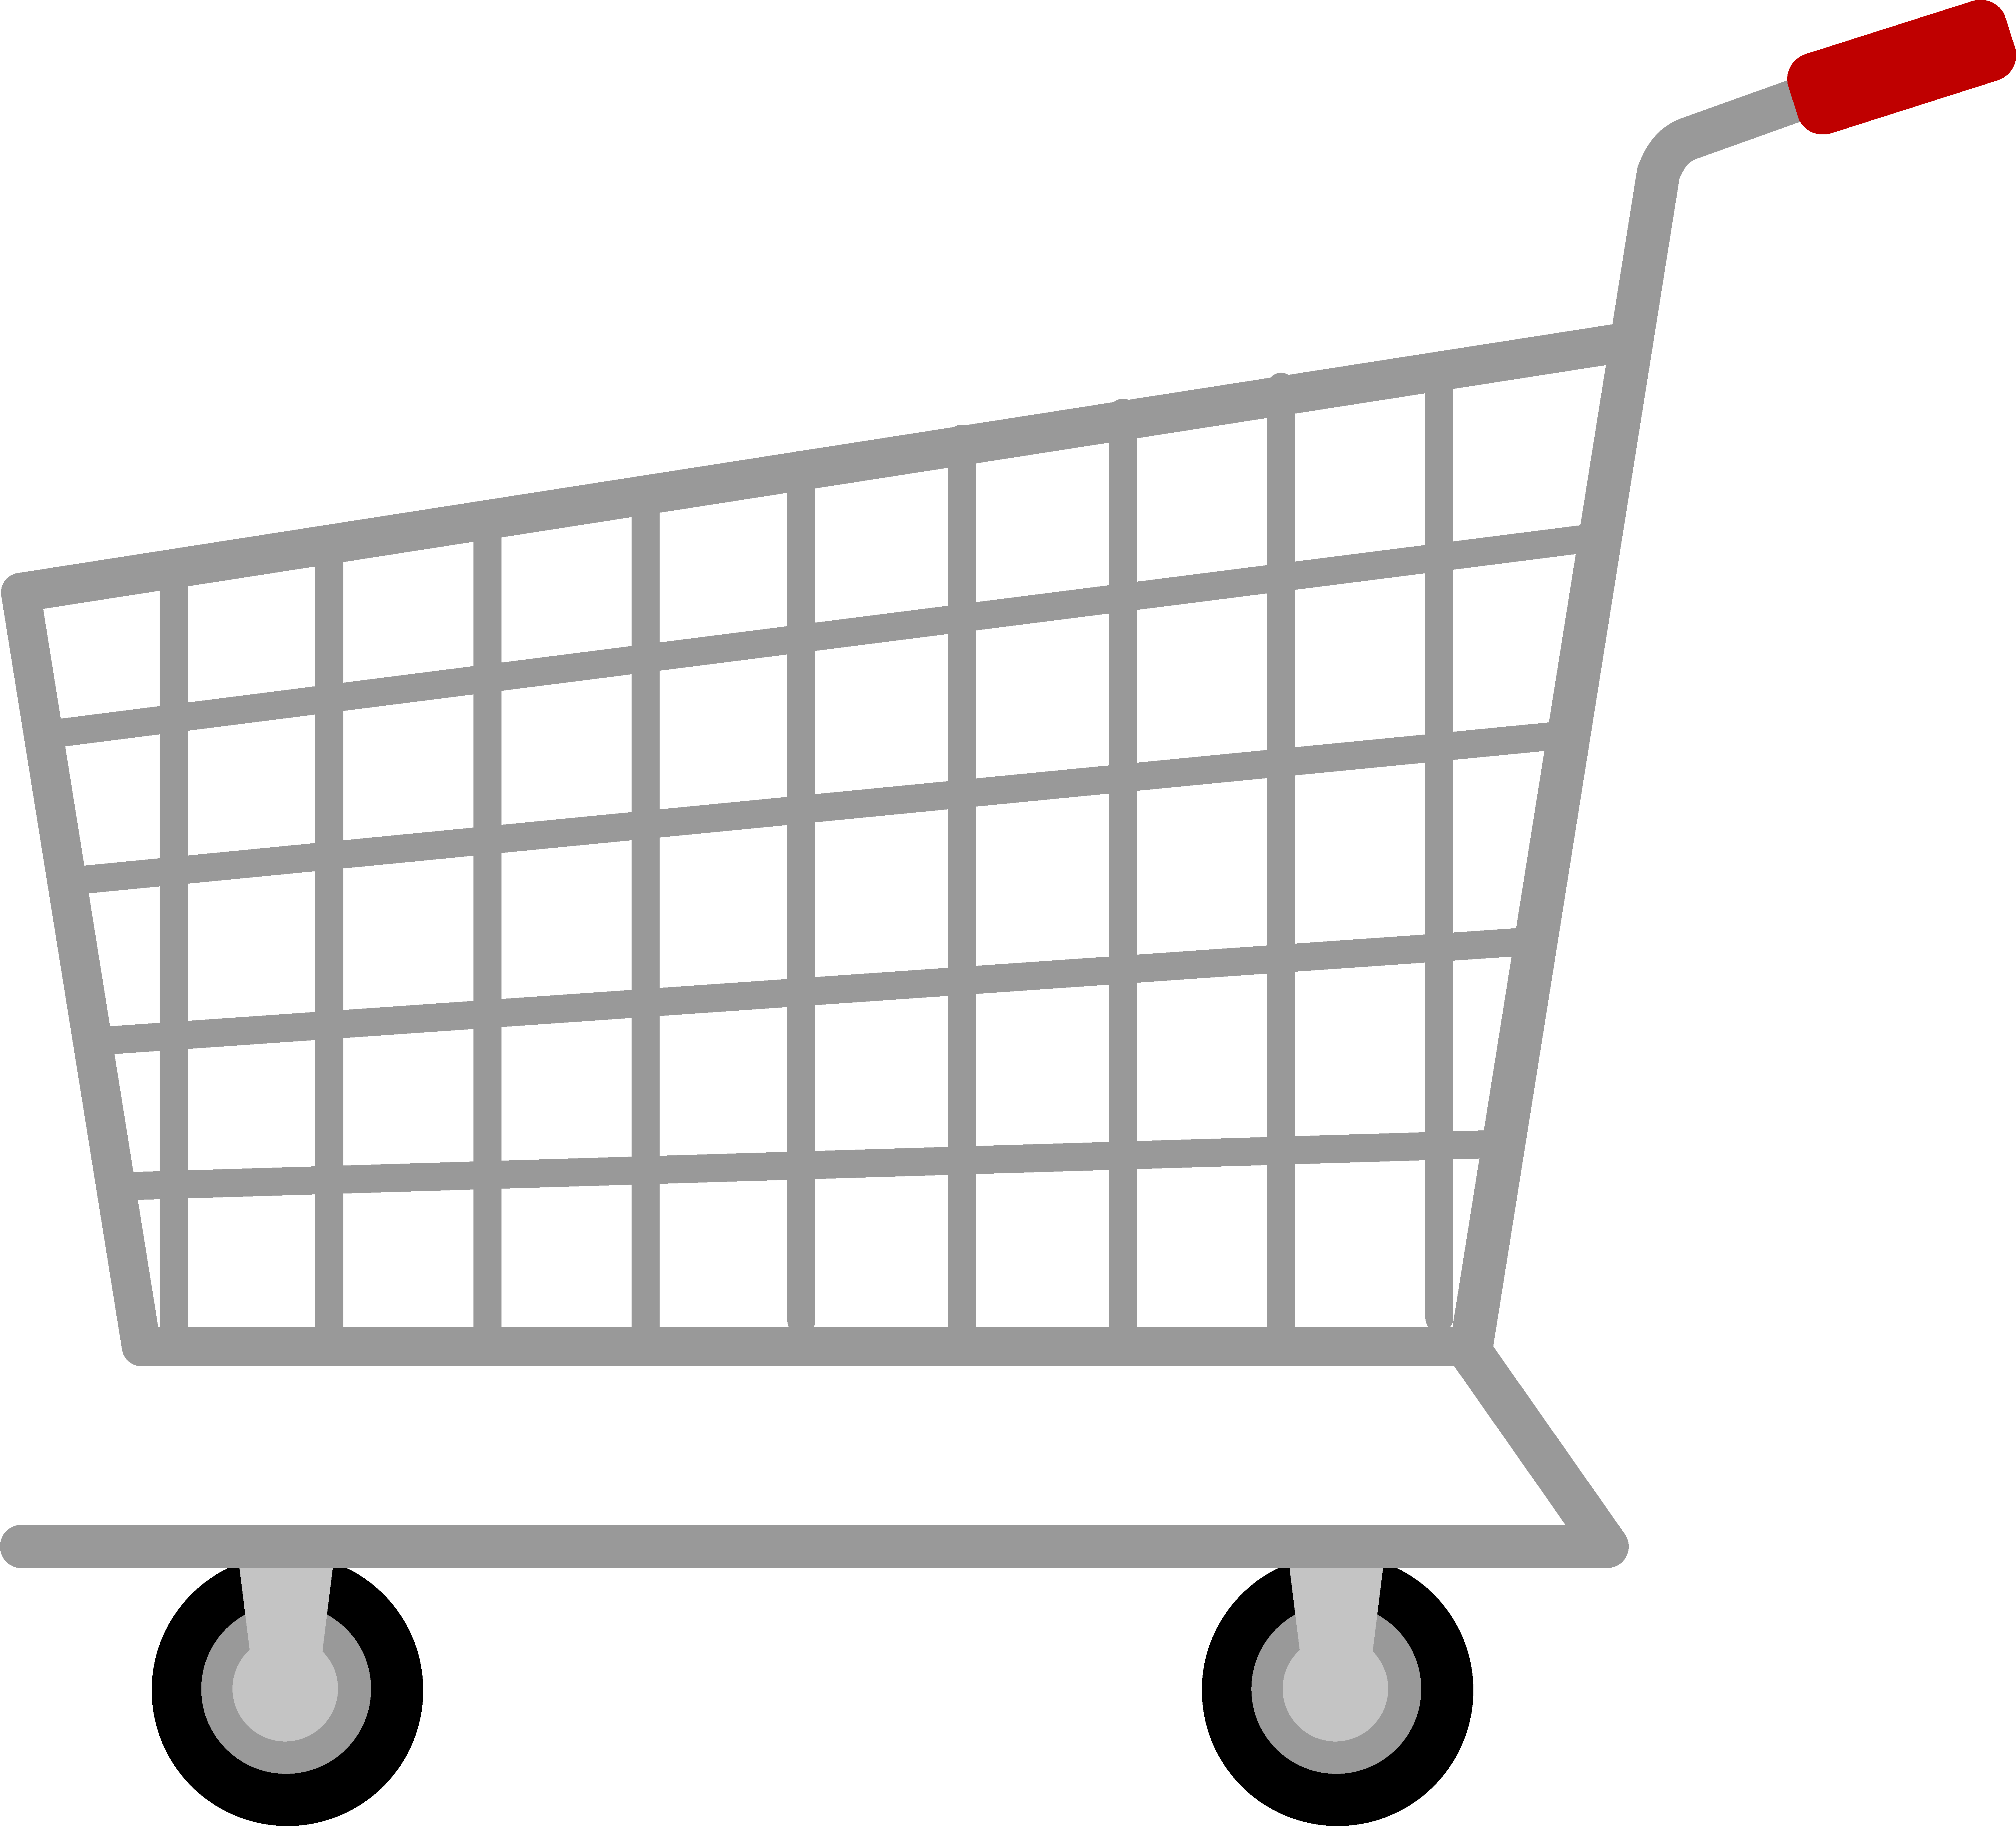 Clipart grocery cart clipart royalty free download Silver Shopping Cart - Free Clip Art clipart royalty free download